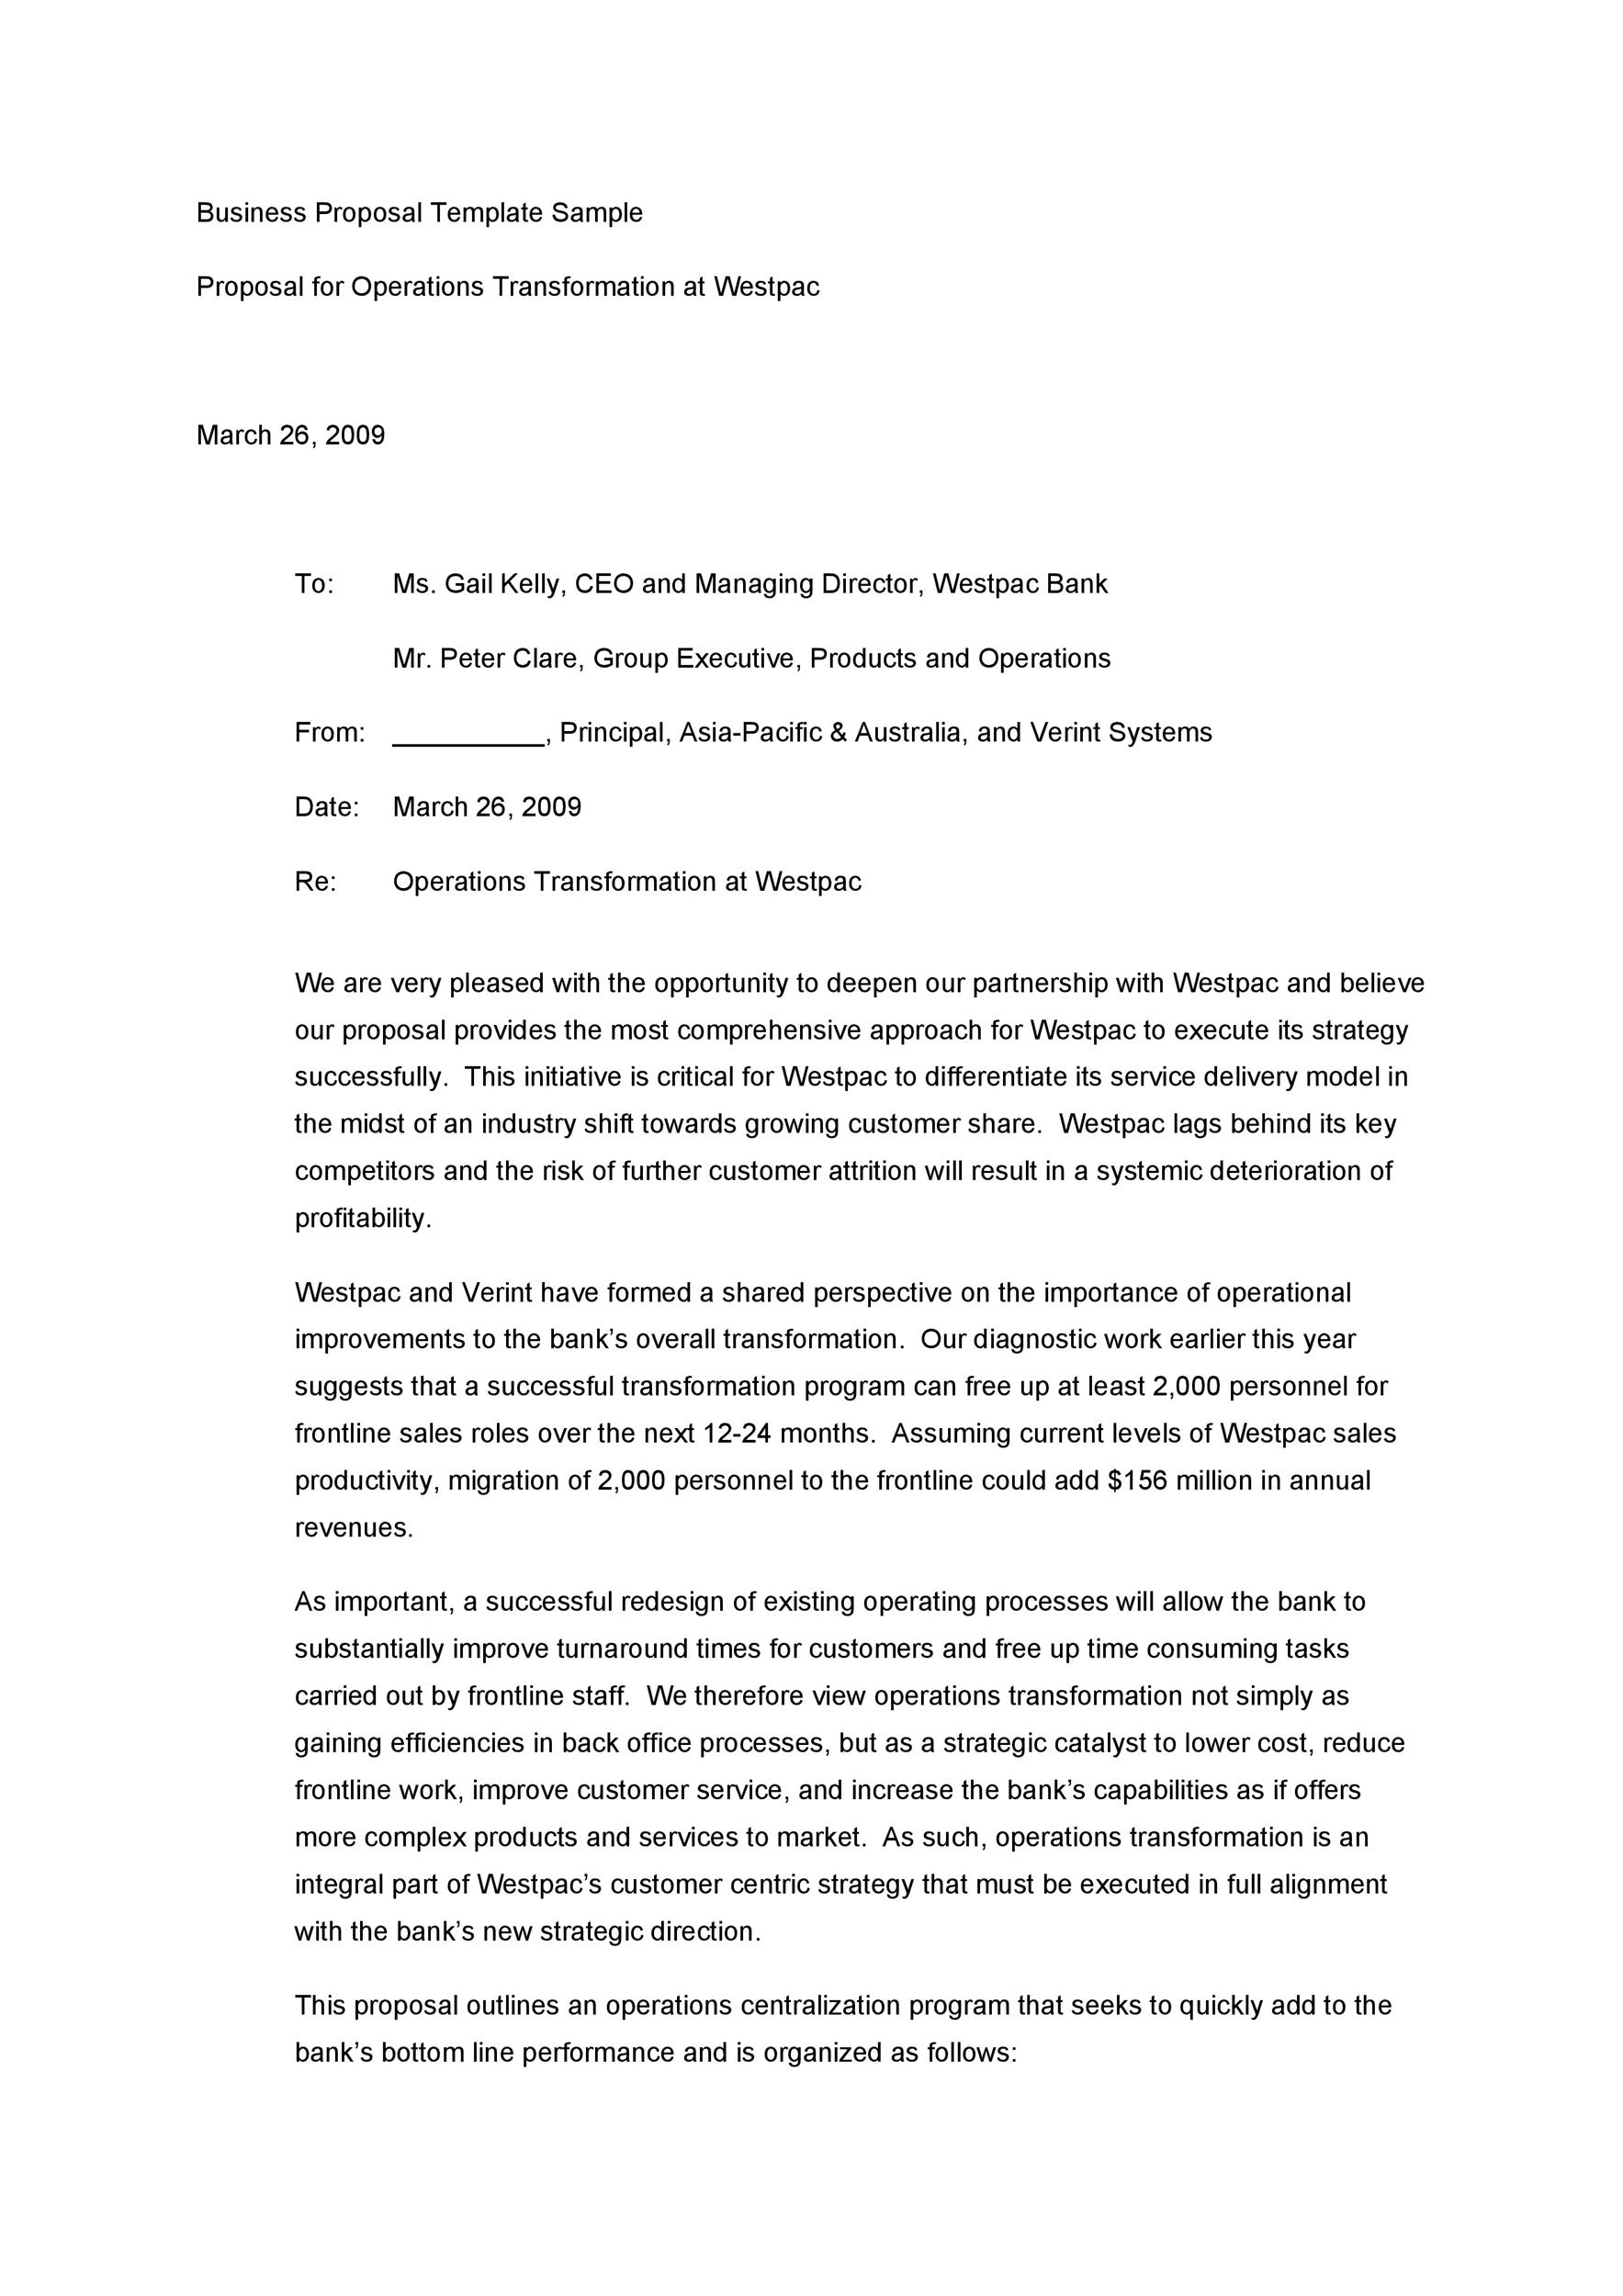 Business Proposal Business Proposal Letter Pdf Sample Business